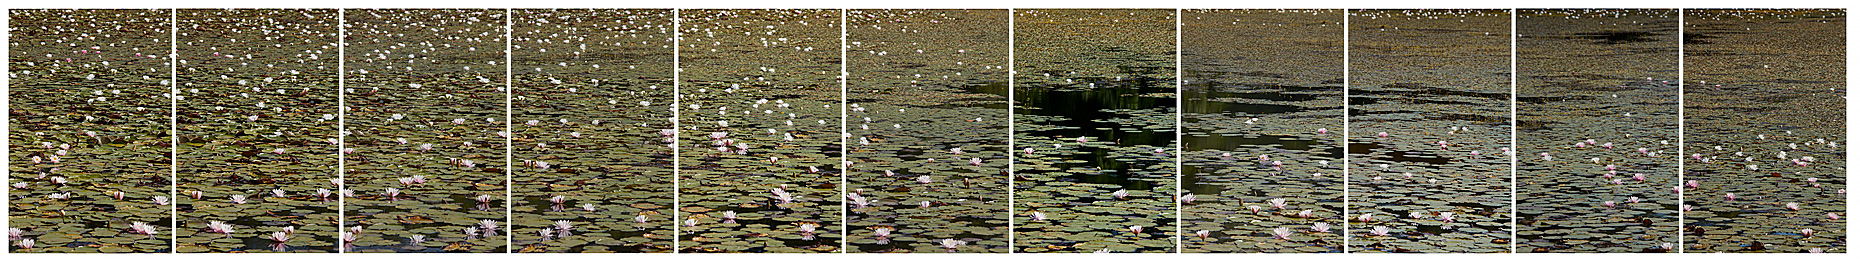 11_FL173-Sandwich-Pond-Two_18_3